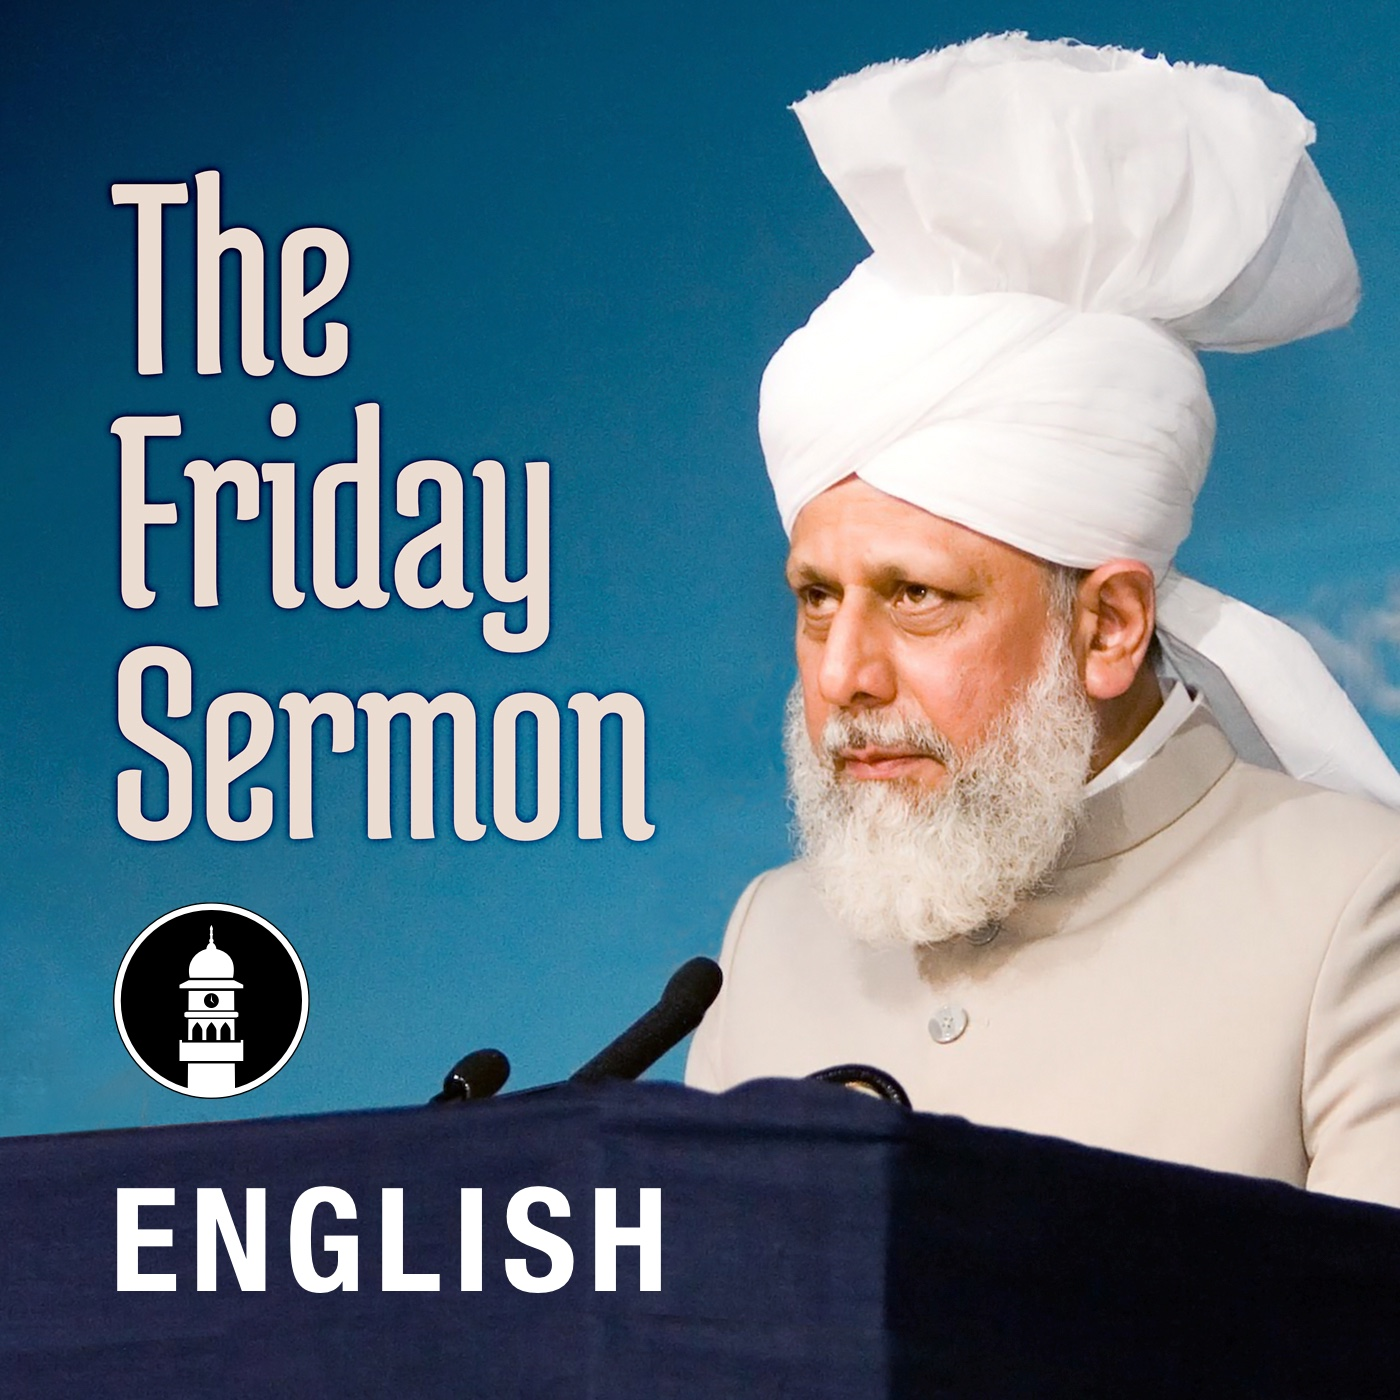 English Friday Sermon by Head of Ahmadiyya Muslim Community